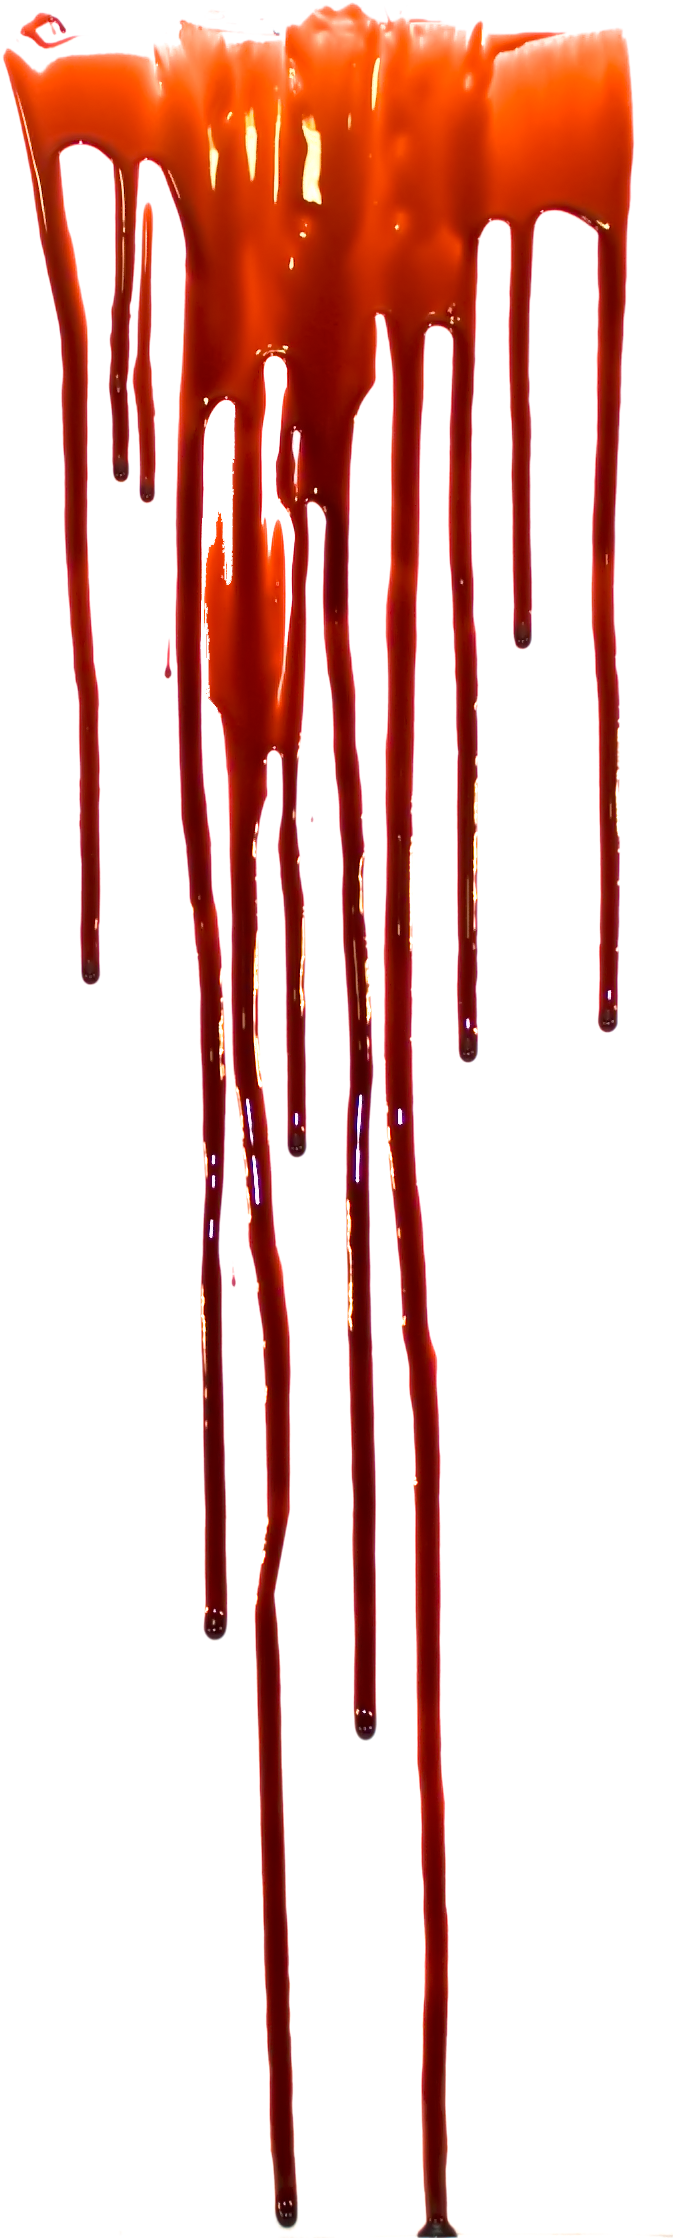 Realistic dripping blood png. Free download on mbtskoudsalg